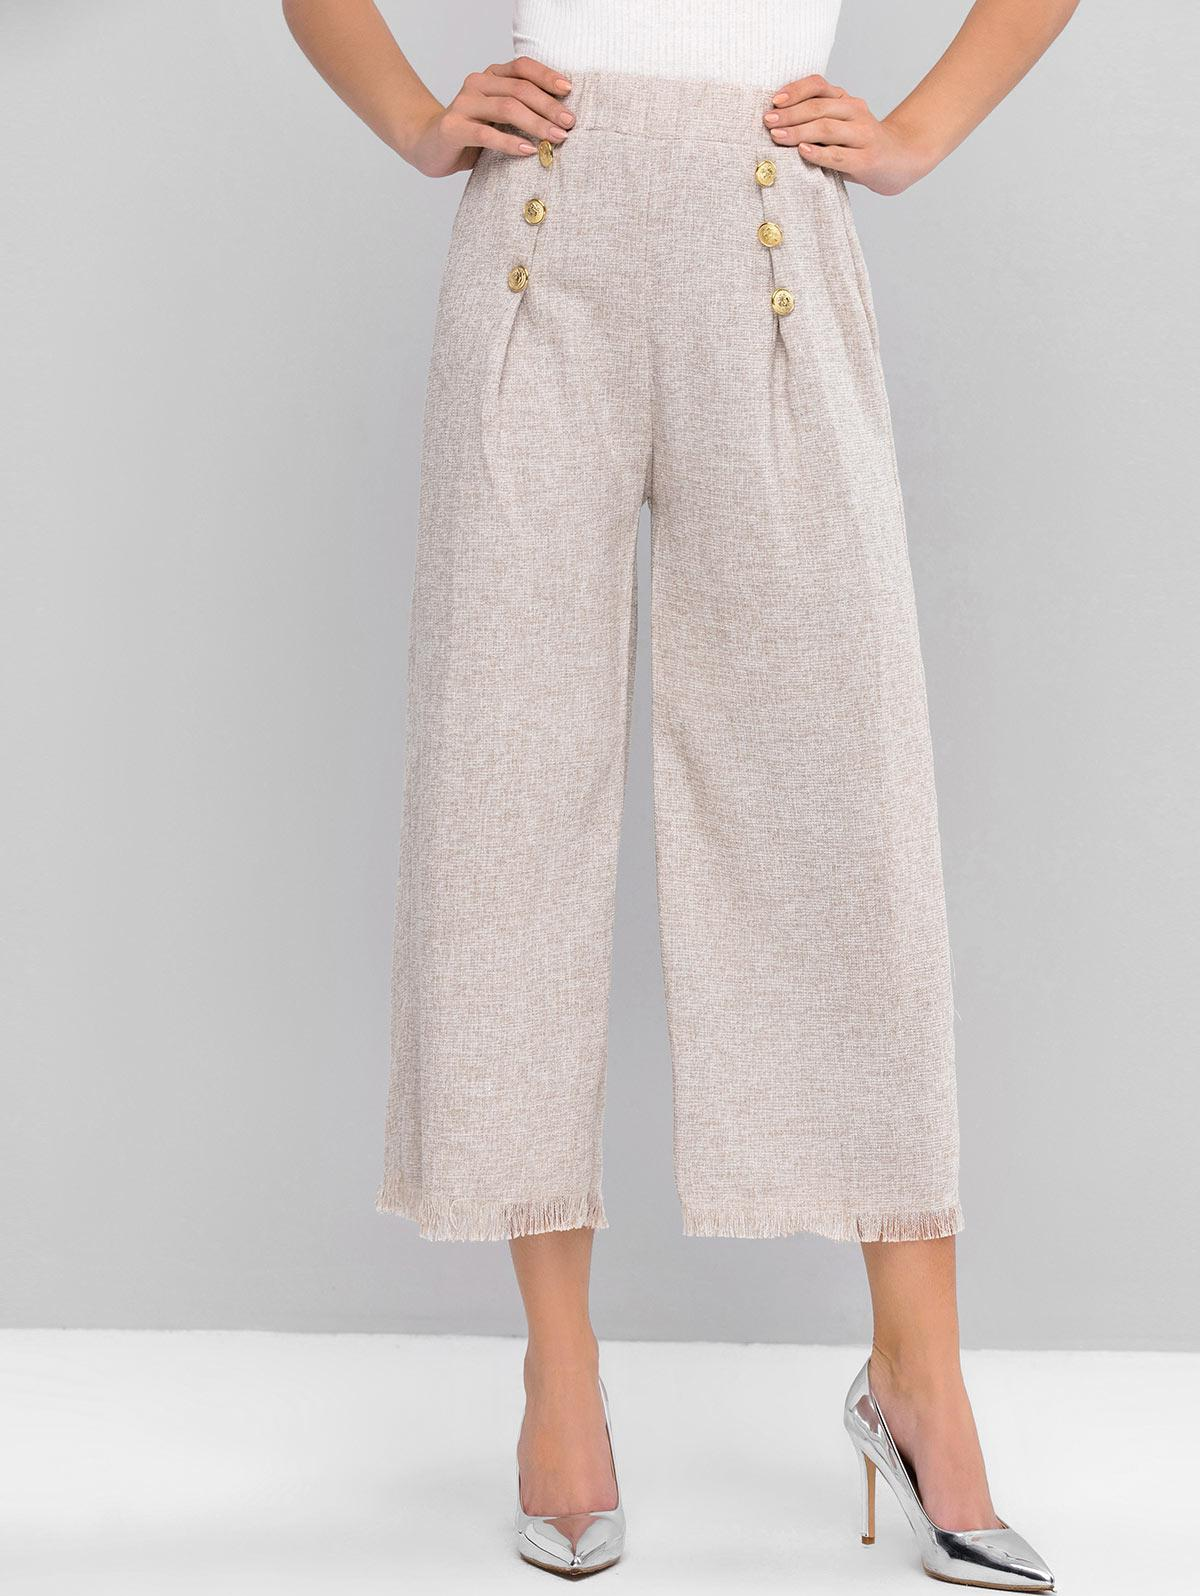 ZAFUL Buttoned Heathered Fringed Hem Wide Leg Pants